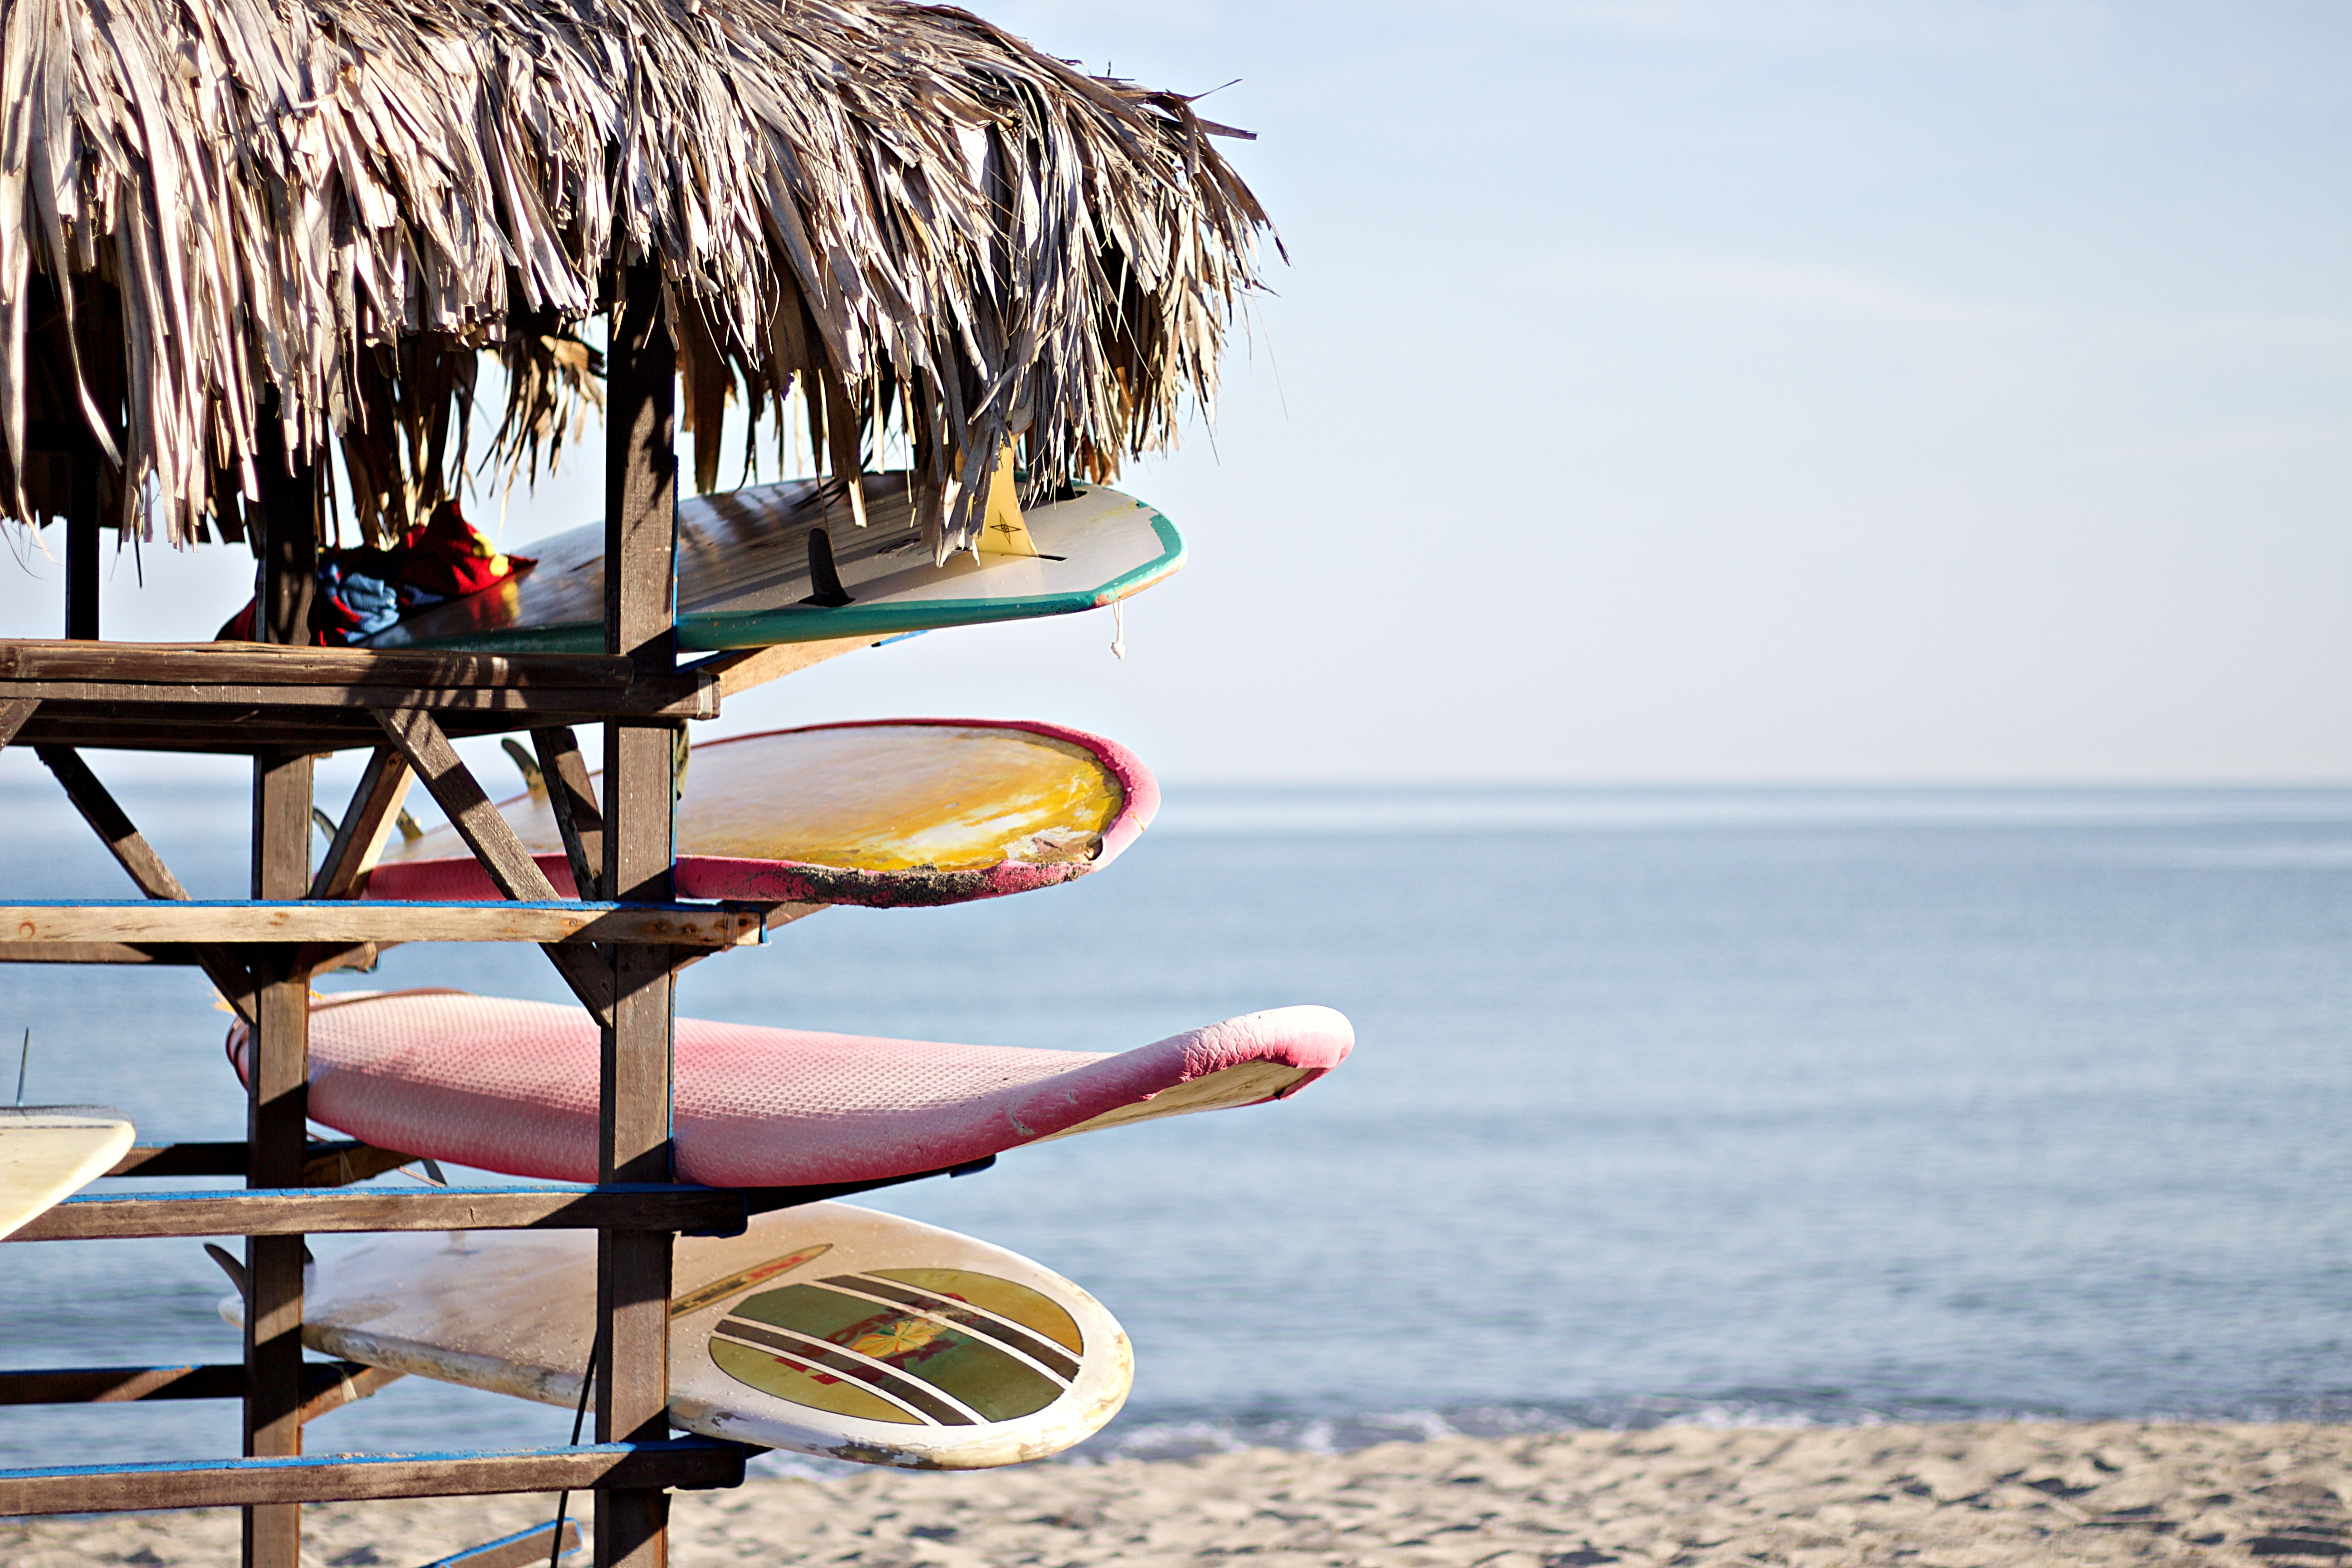 red and white surfboard in brown wooden rack